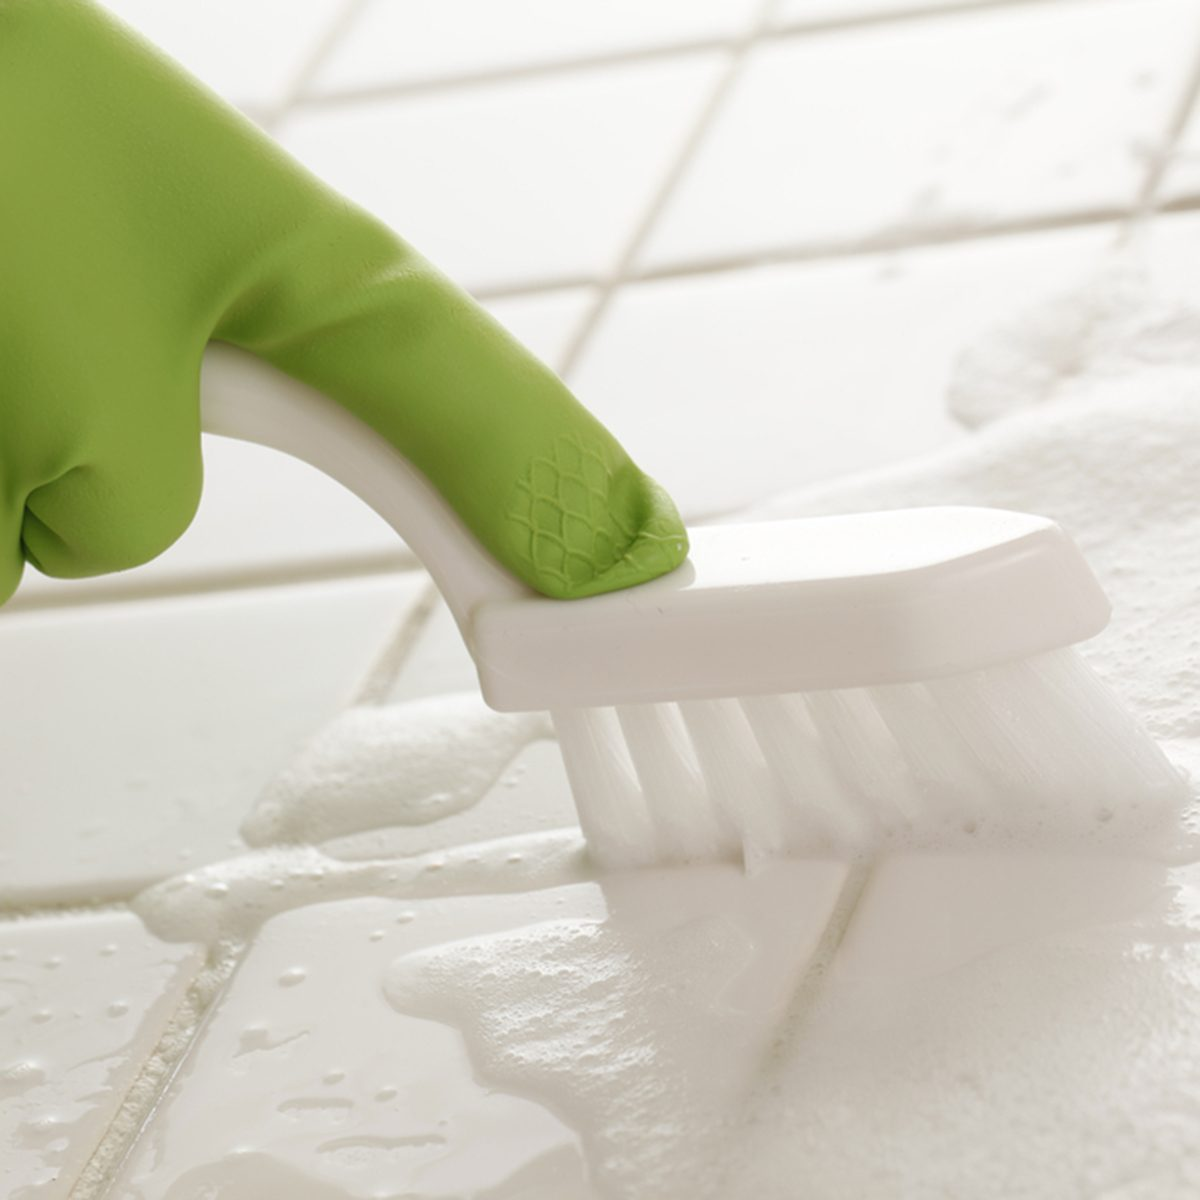 Cleaning,; Shutterstock ID 128594162